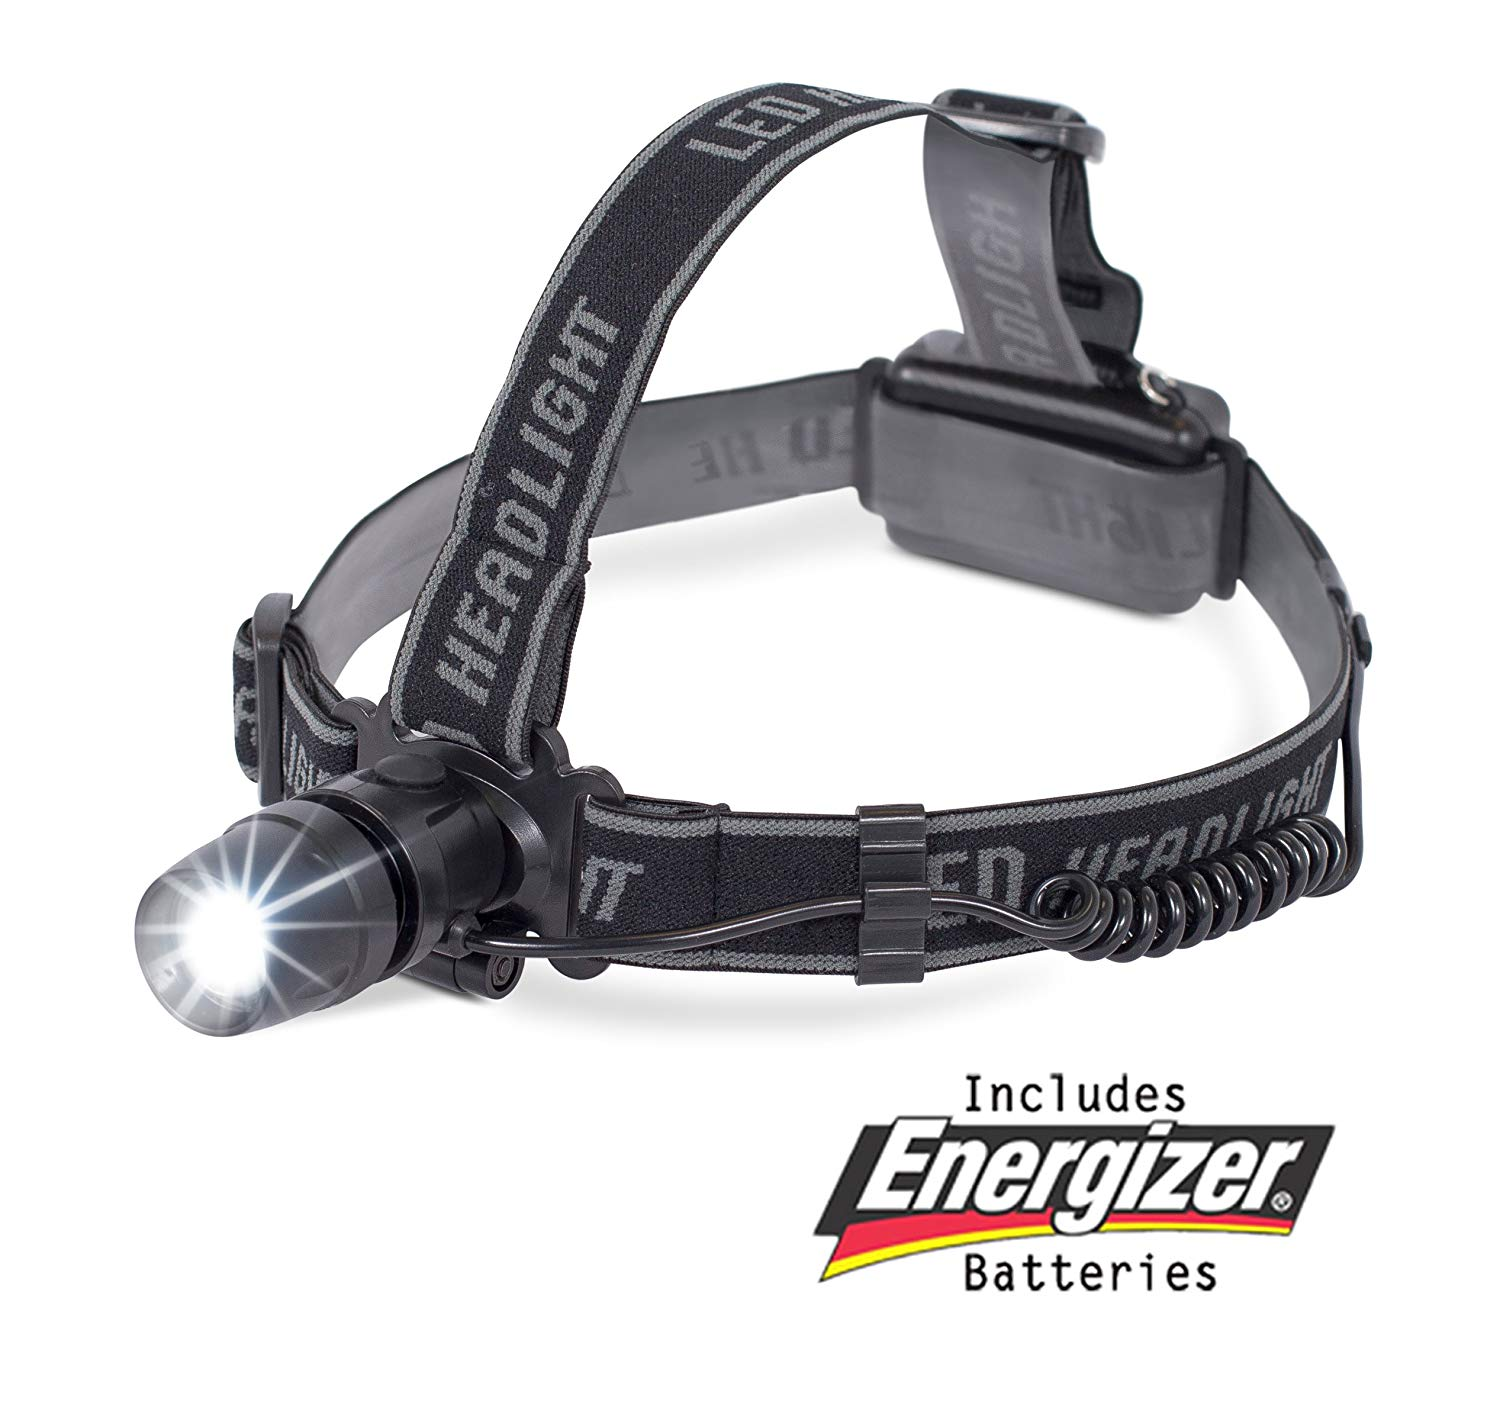 Internet's Best LED Headlight with Wide Range | 2 Modes Headlamp | Lightweight | Battery Powered Helmet Light for Hiking Camping Running Reading | 3 AAA Batteries Included